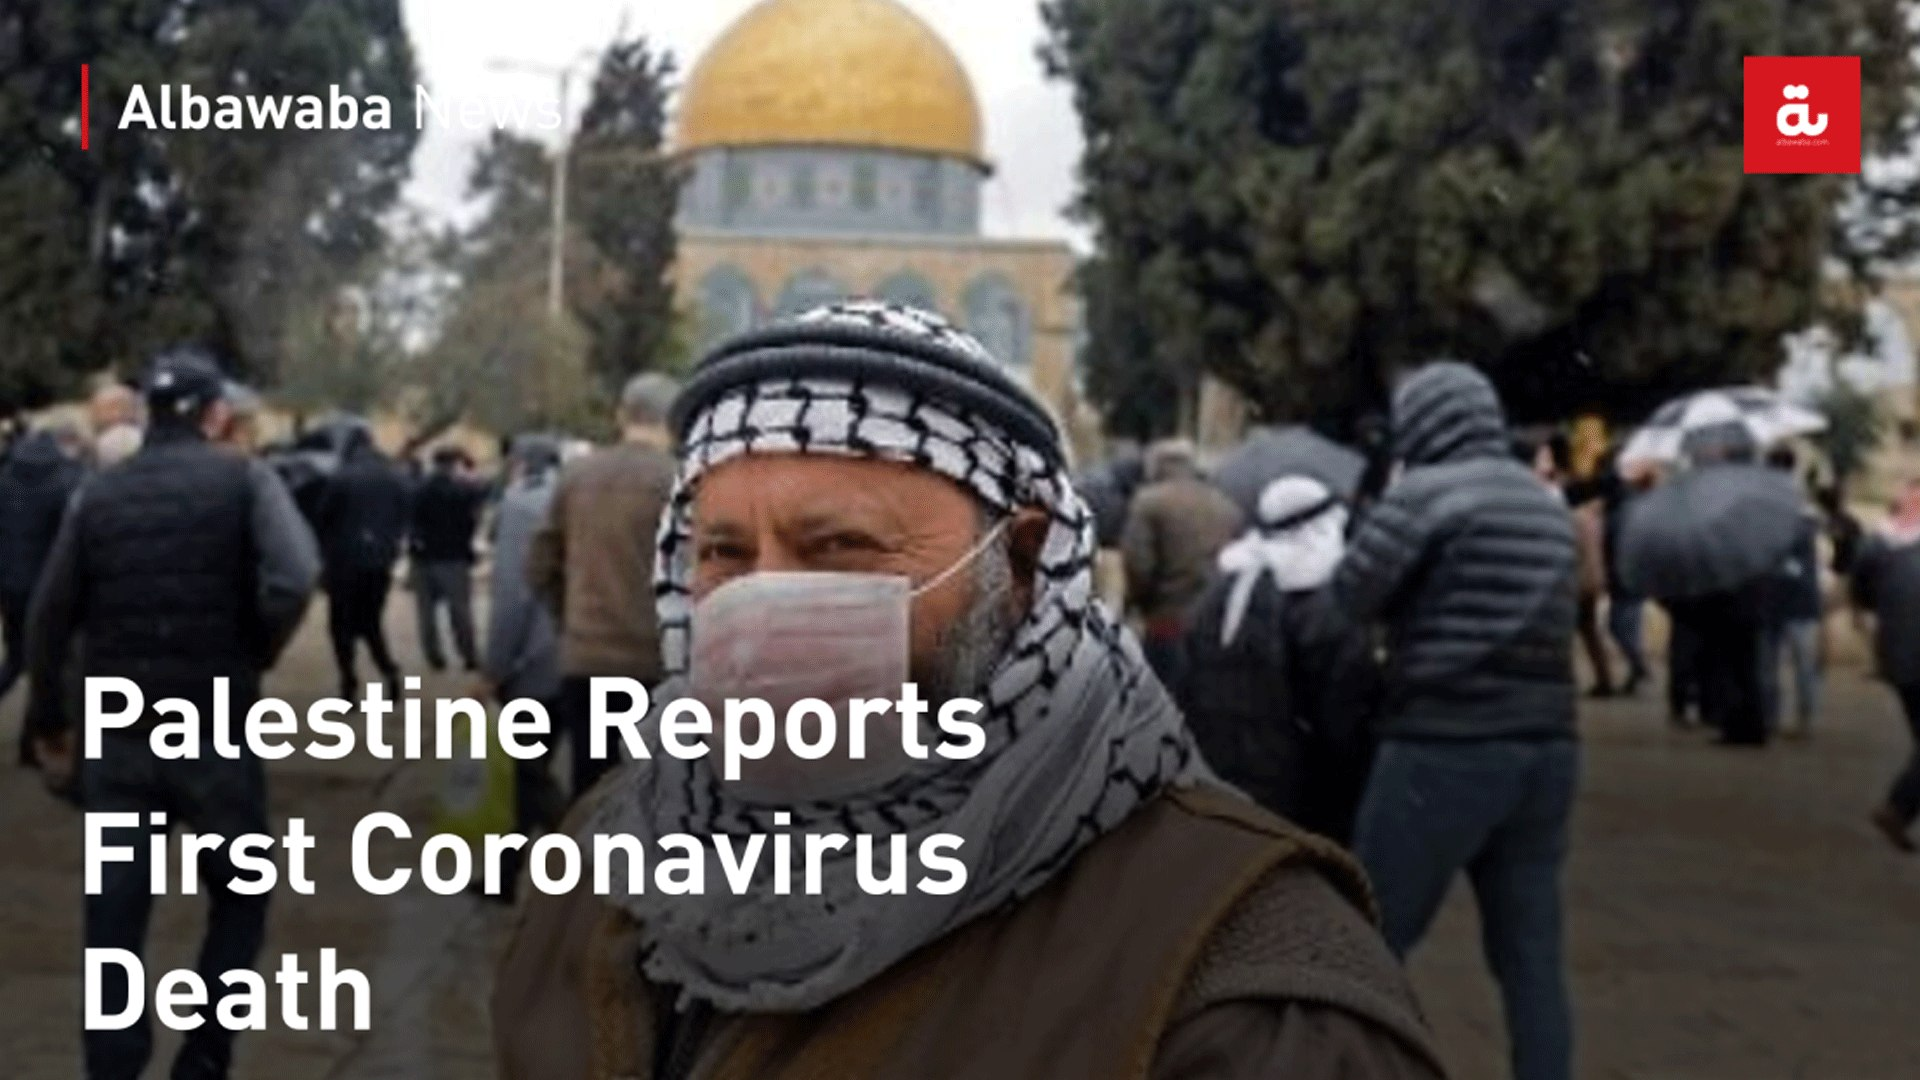 Palestine Reports First Coronavirus Death